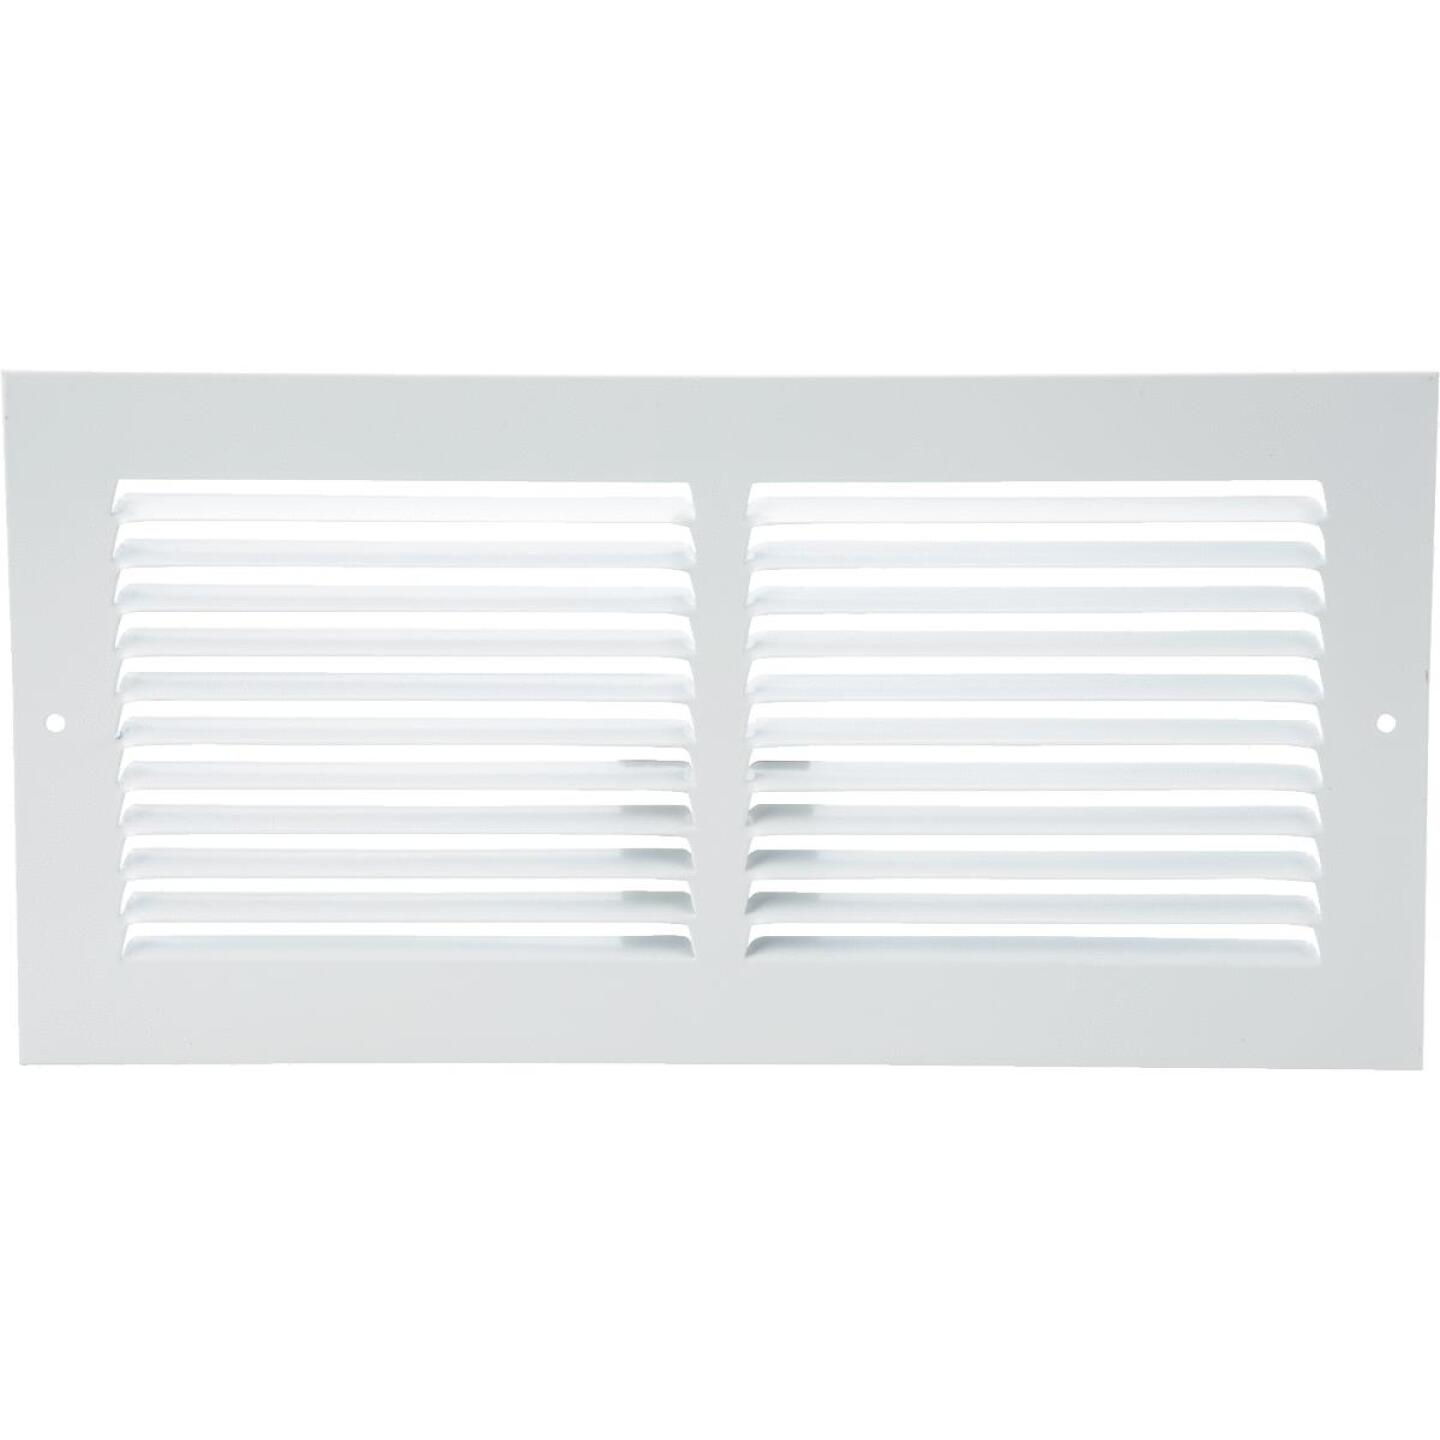 Home Impressions 6 In. x 14 In. Stamped Steel Return Air Grille Image 2